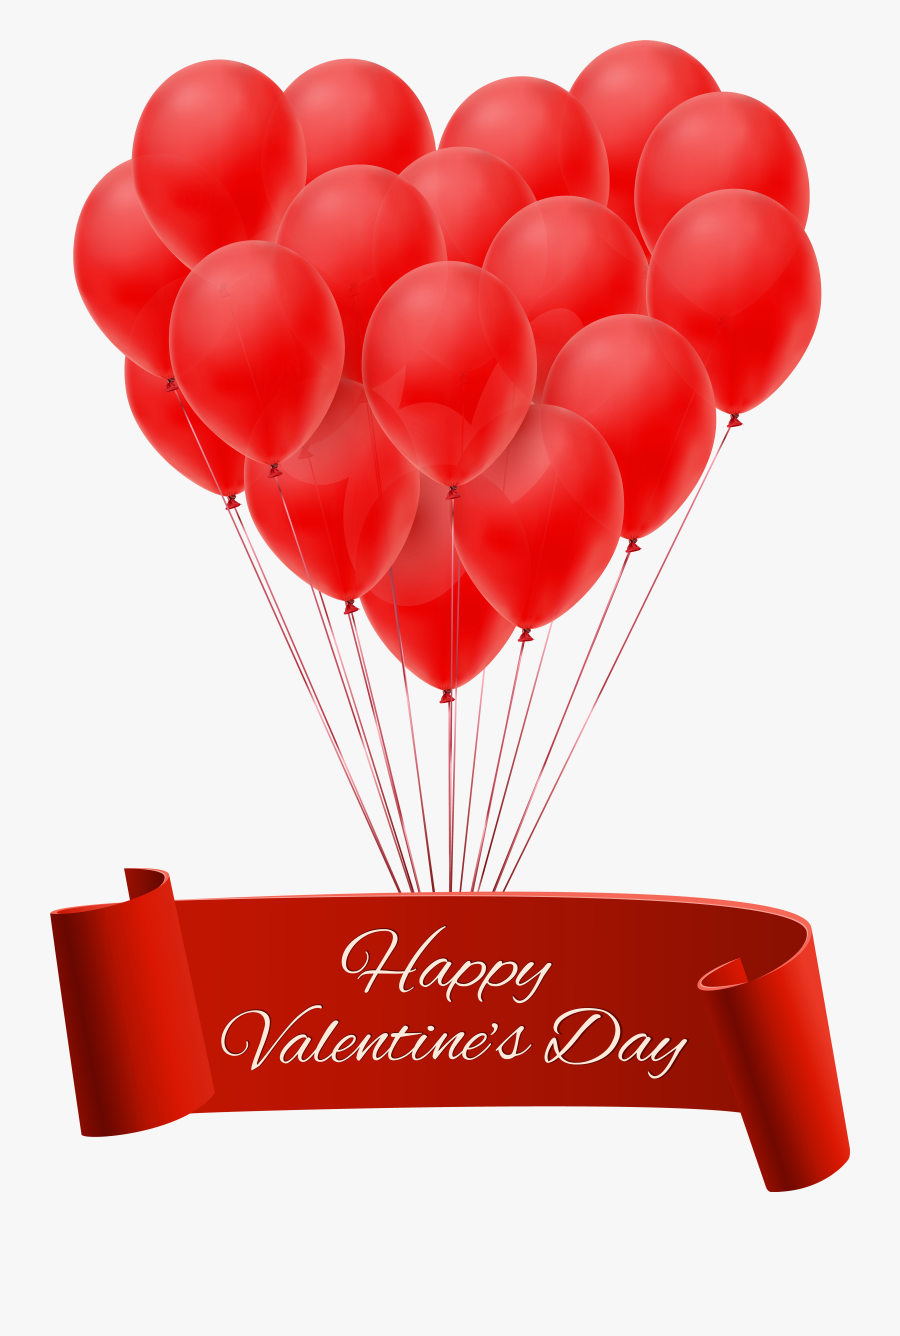 """Happy Valentine""""s Day Banner With Balloons Png Clip - Happy New Year 2019 In Advance, Transparent Clipart"""